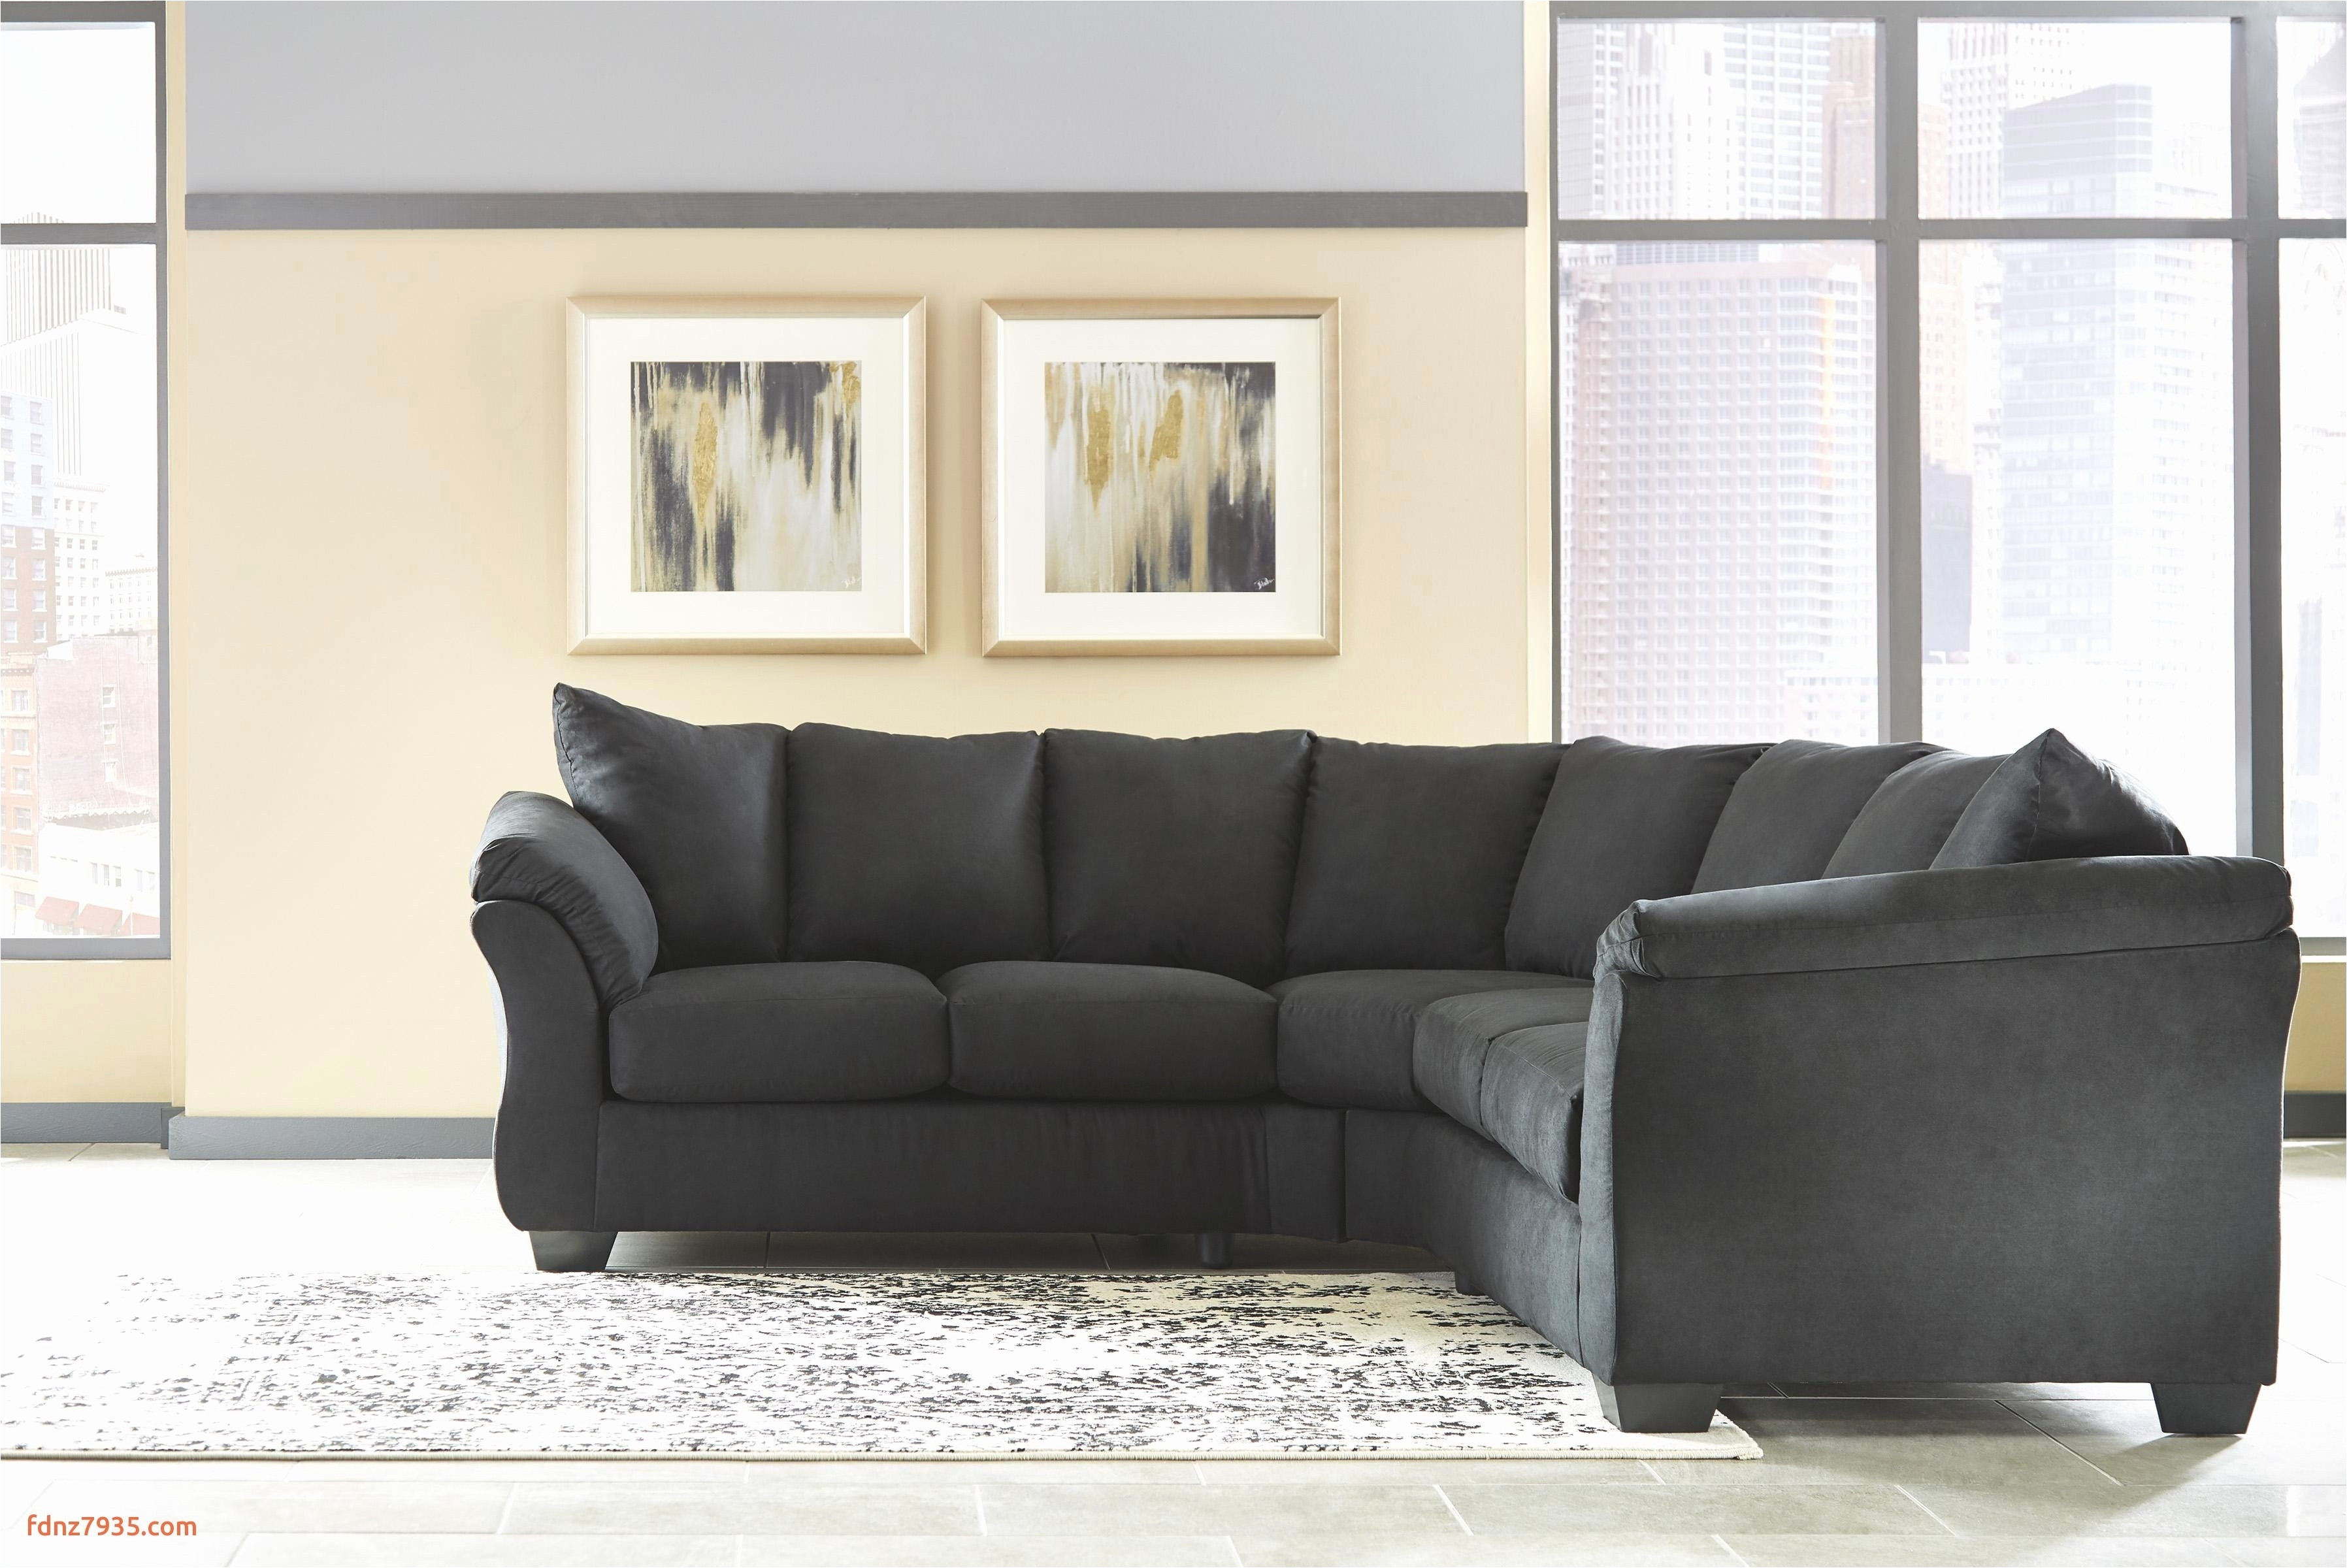 Used Furniture Stores Lawton Ok Furniture Stores Lawton Ok Bradshomefurnishings